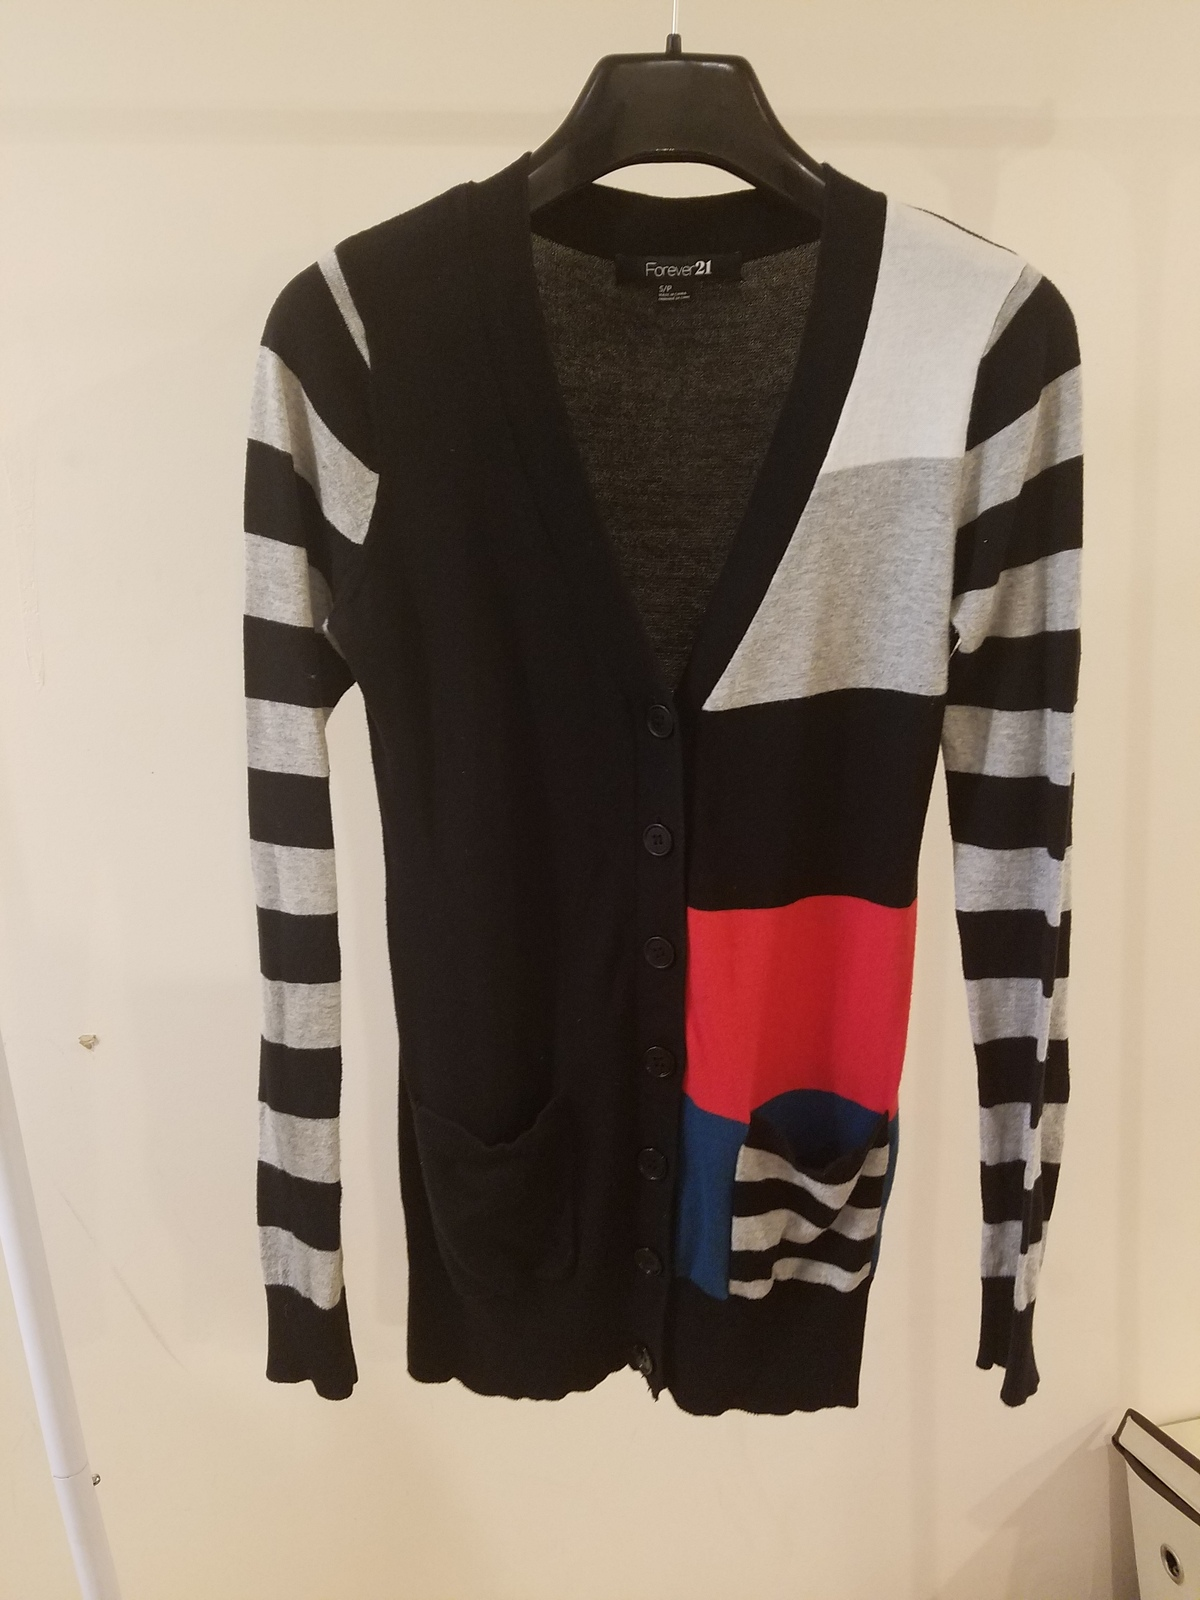 4b245c70576 Forever21 Brand Cardigan Top Women Teen and 50 similar items. 20180710  113423